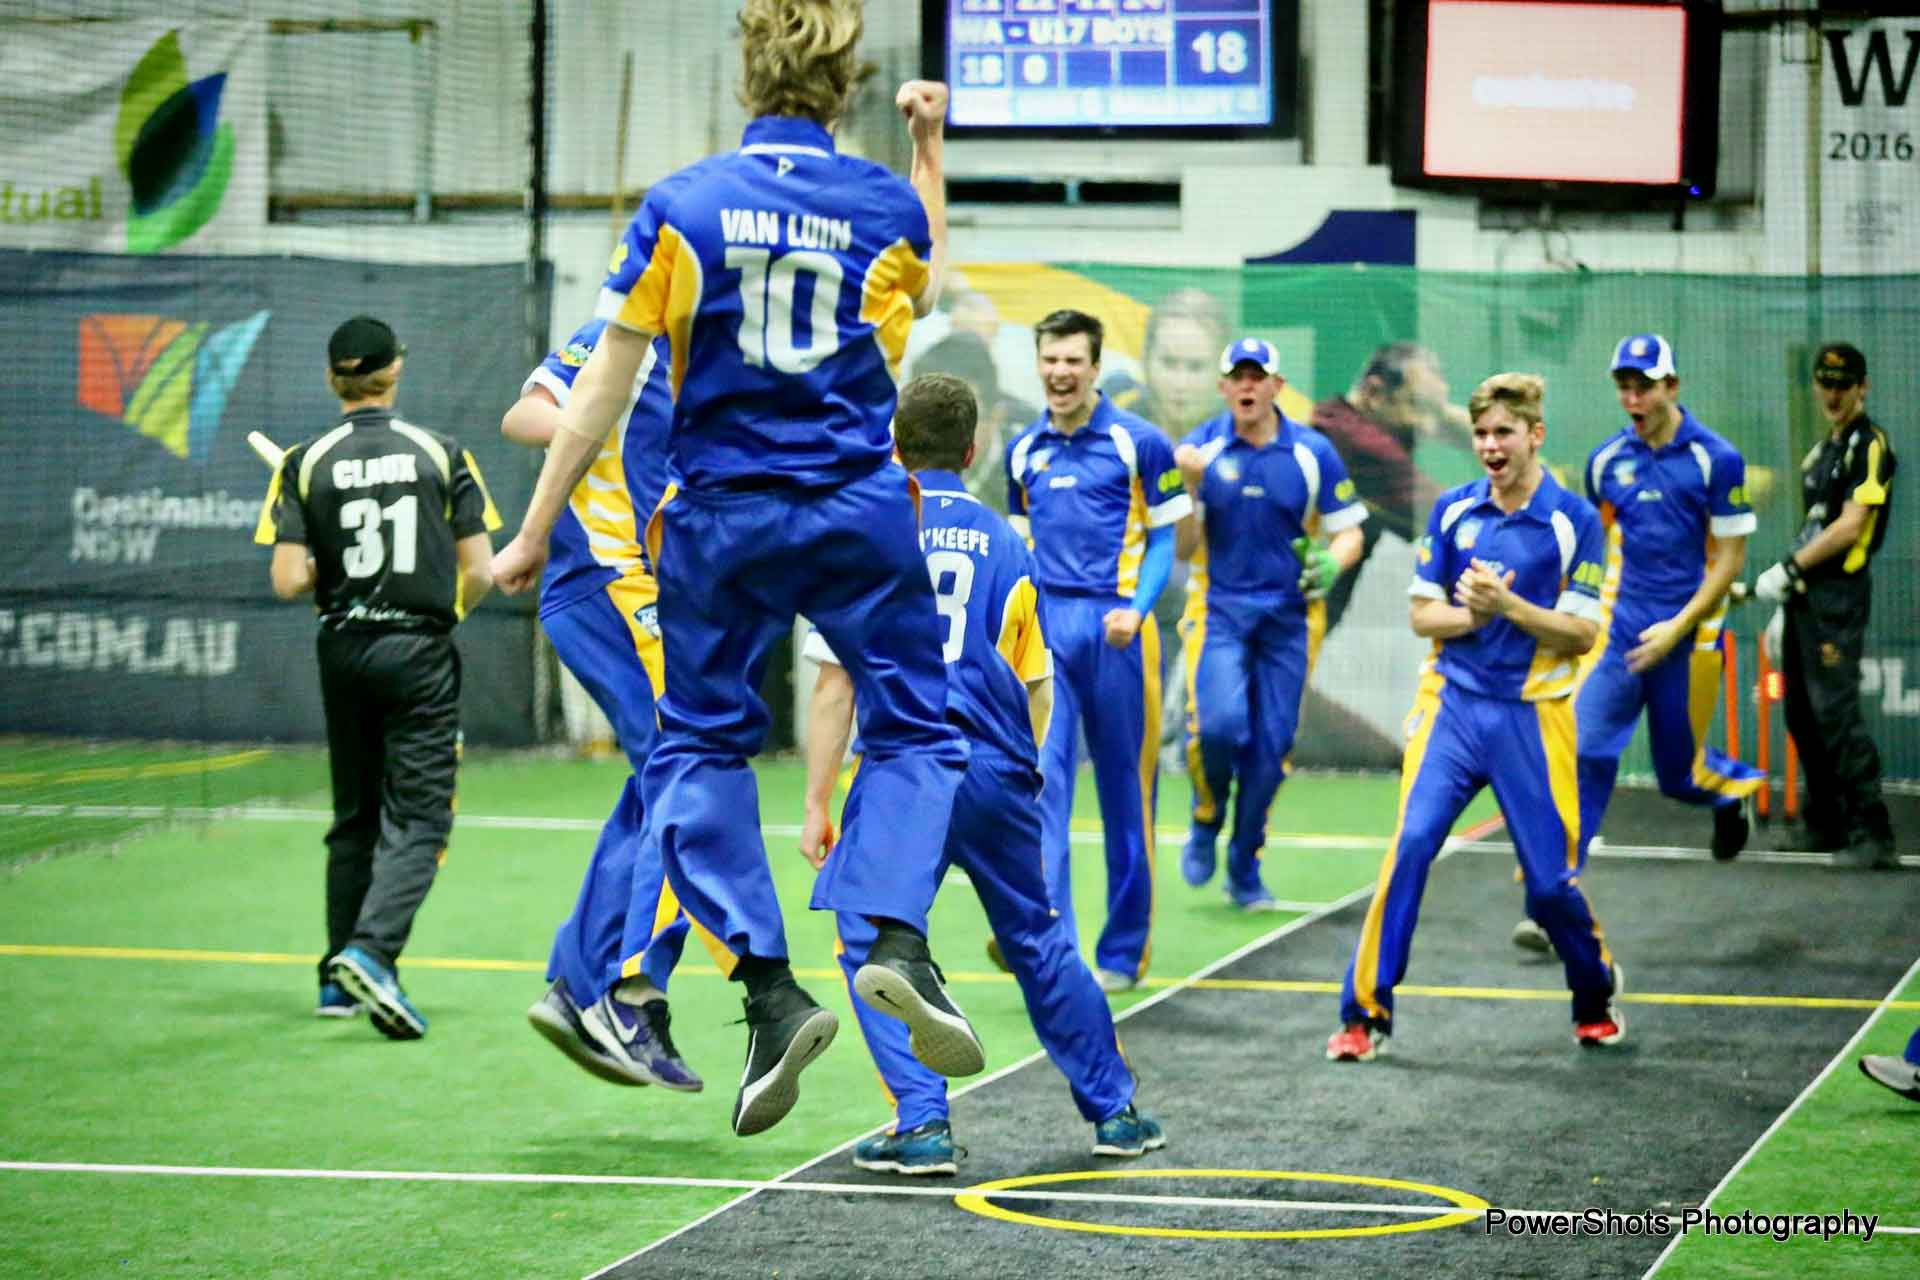 ACT Junior Indoor teams ready and raring as they enter finals